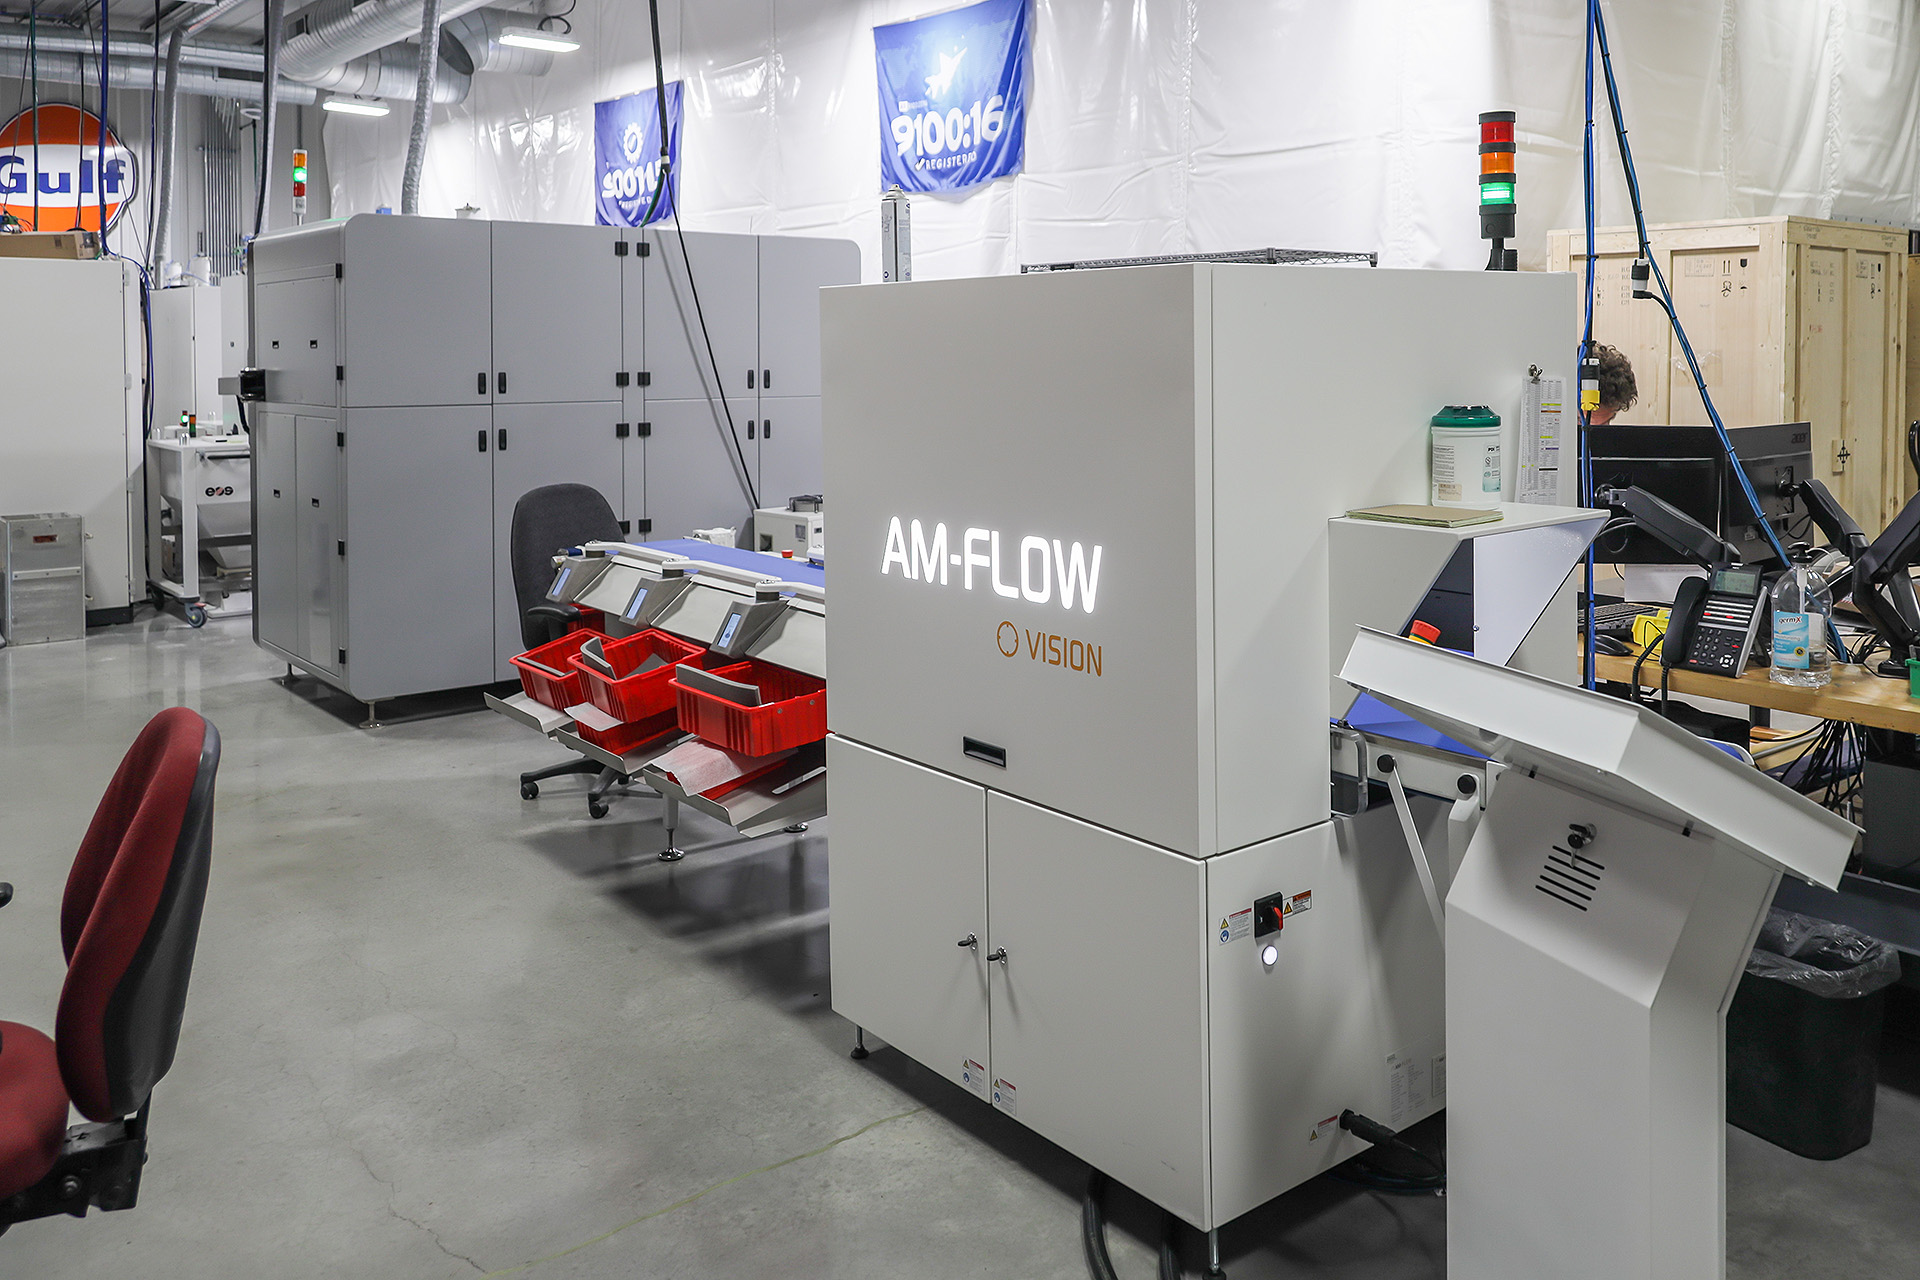 AM-SORT and AM-VISION at the heart of the production facility of Midwest Prototyping